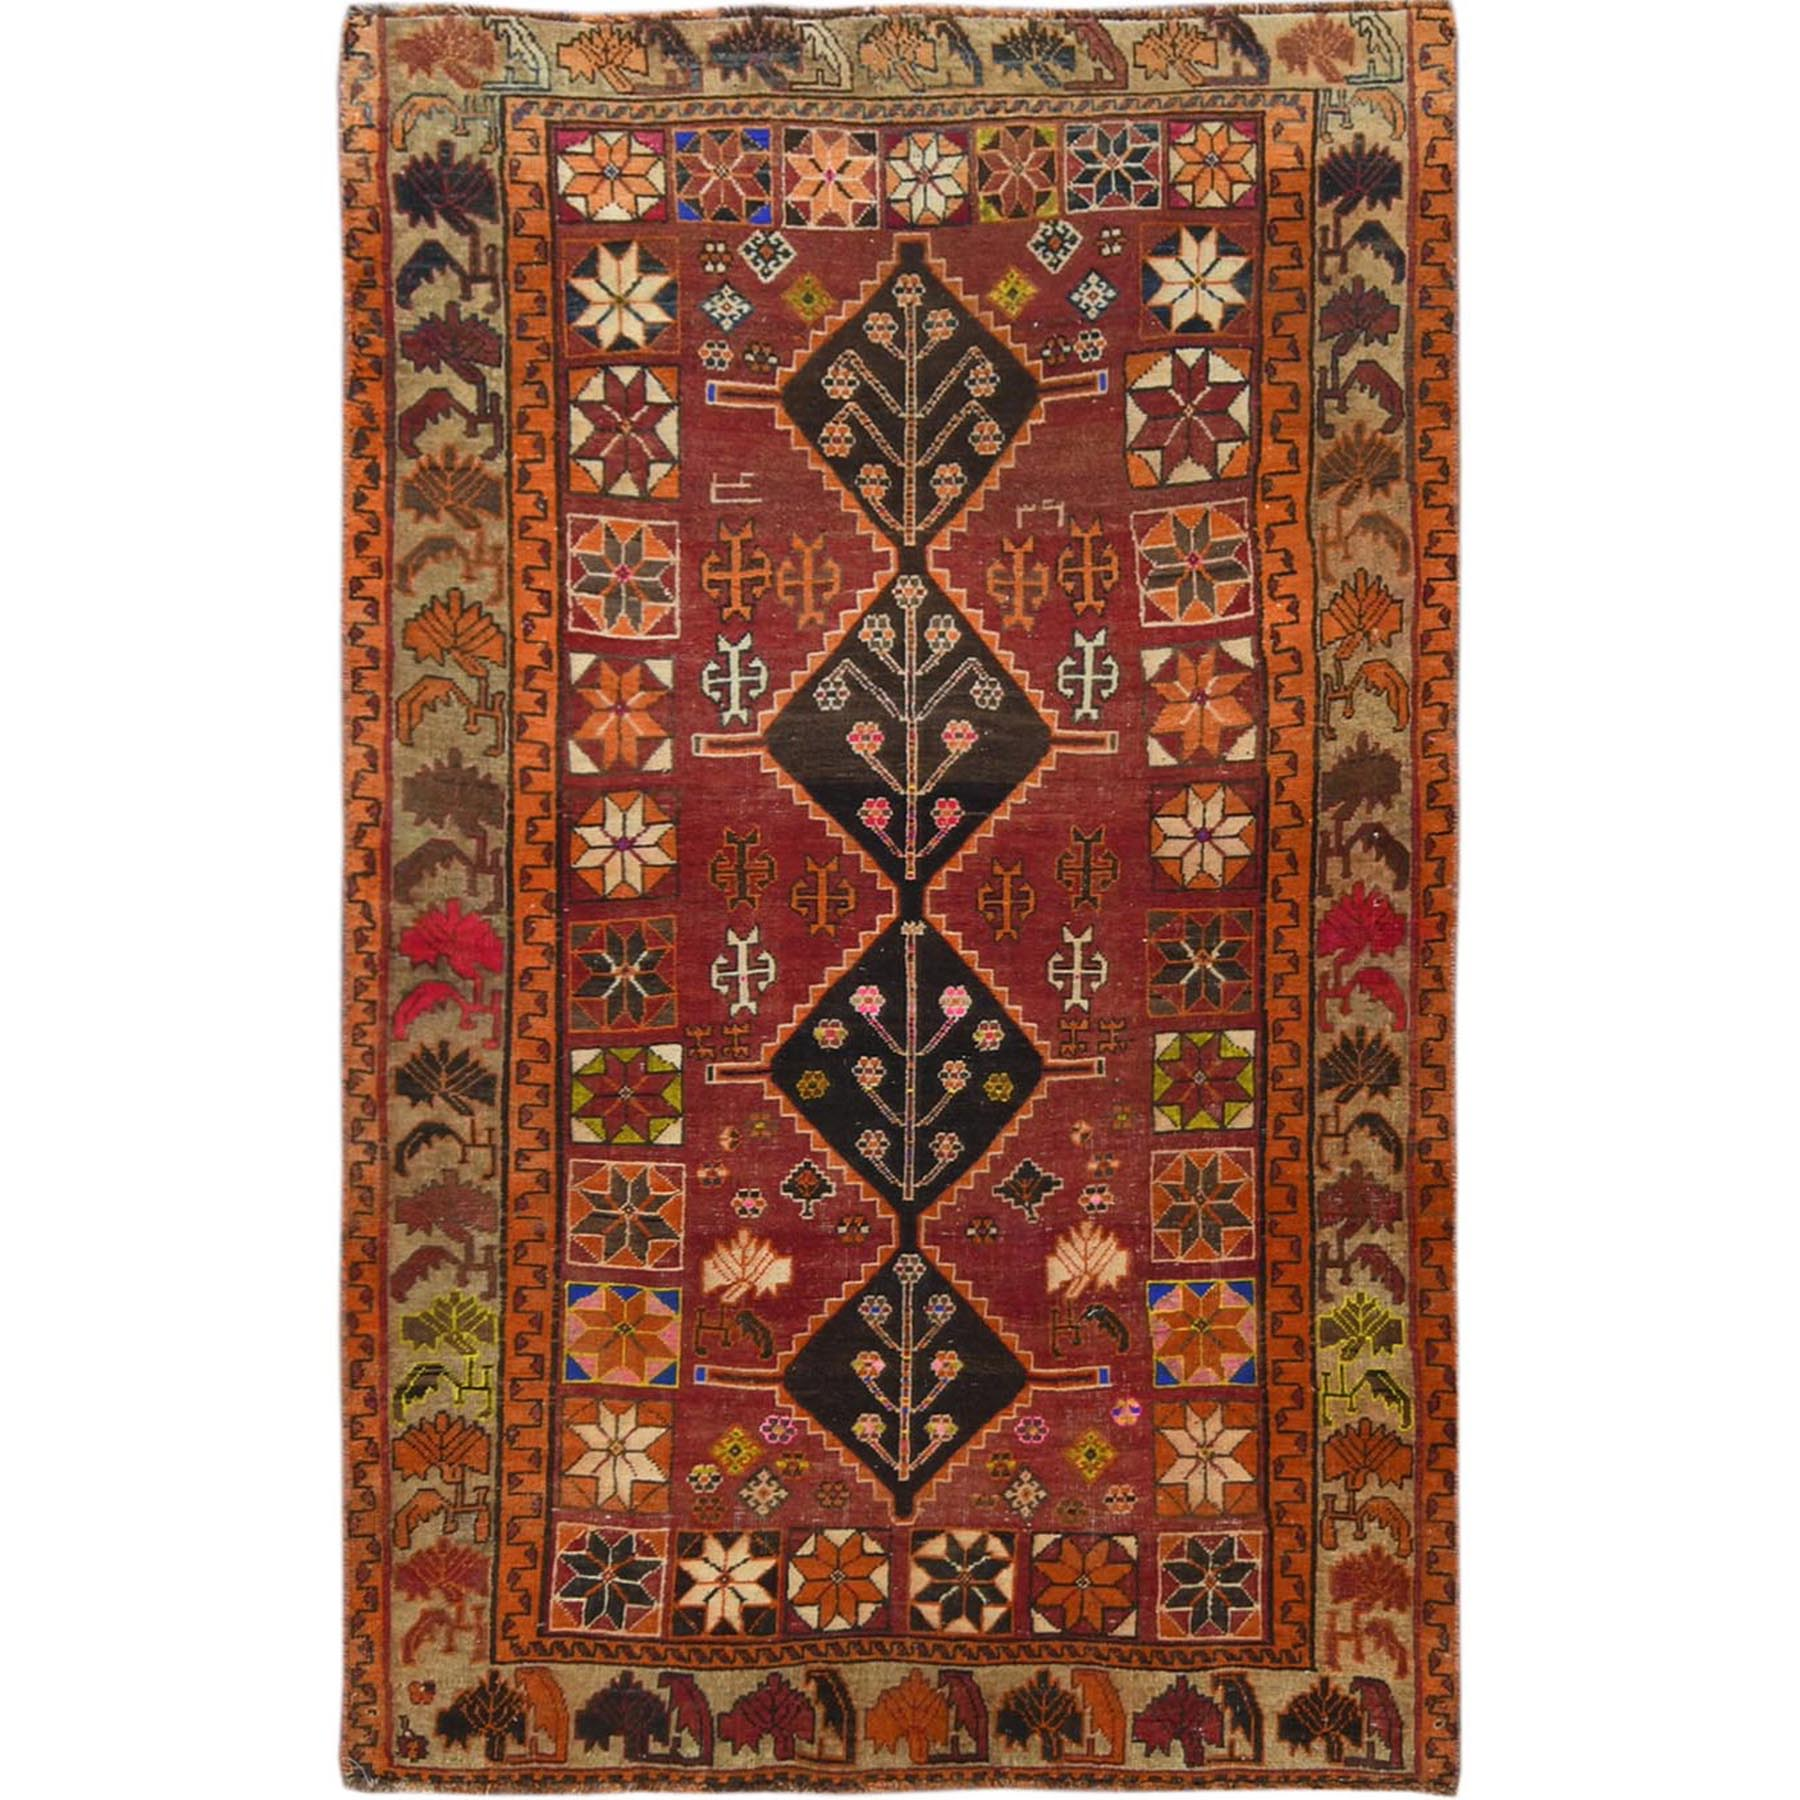 "4'3""x7' Vintage Persian Qashqai Worn Down Excellent Condition Geometric Design Clean Red Hand Knotted Oriental Rug"